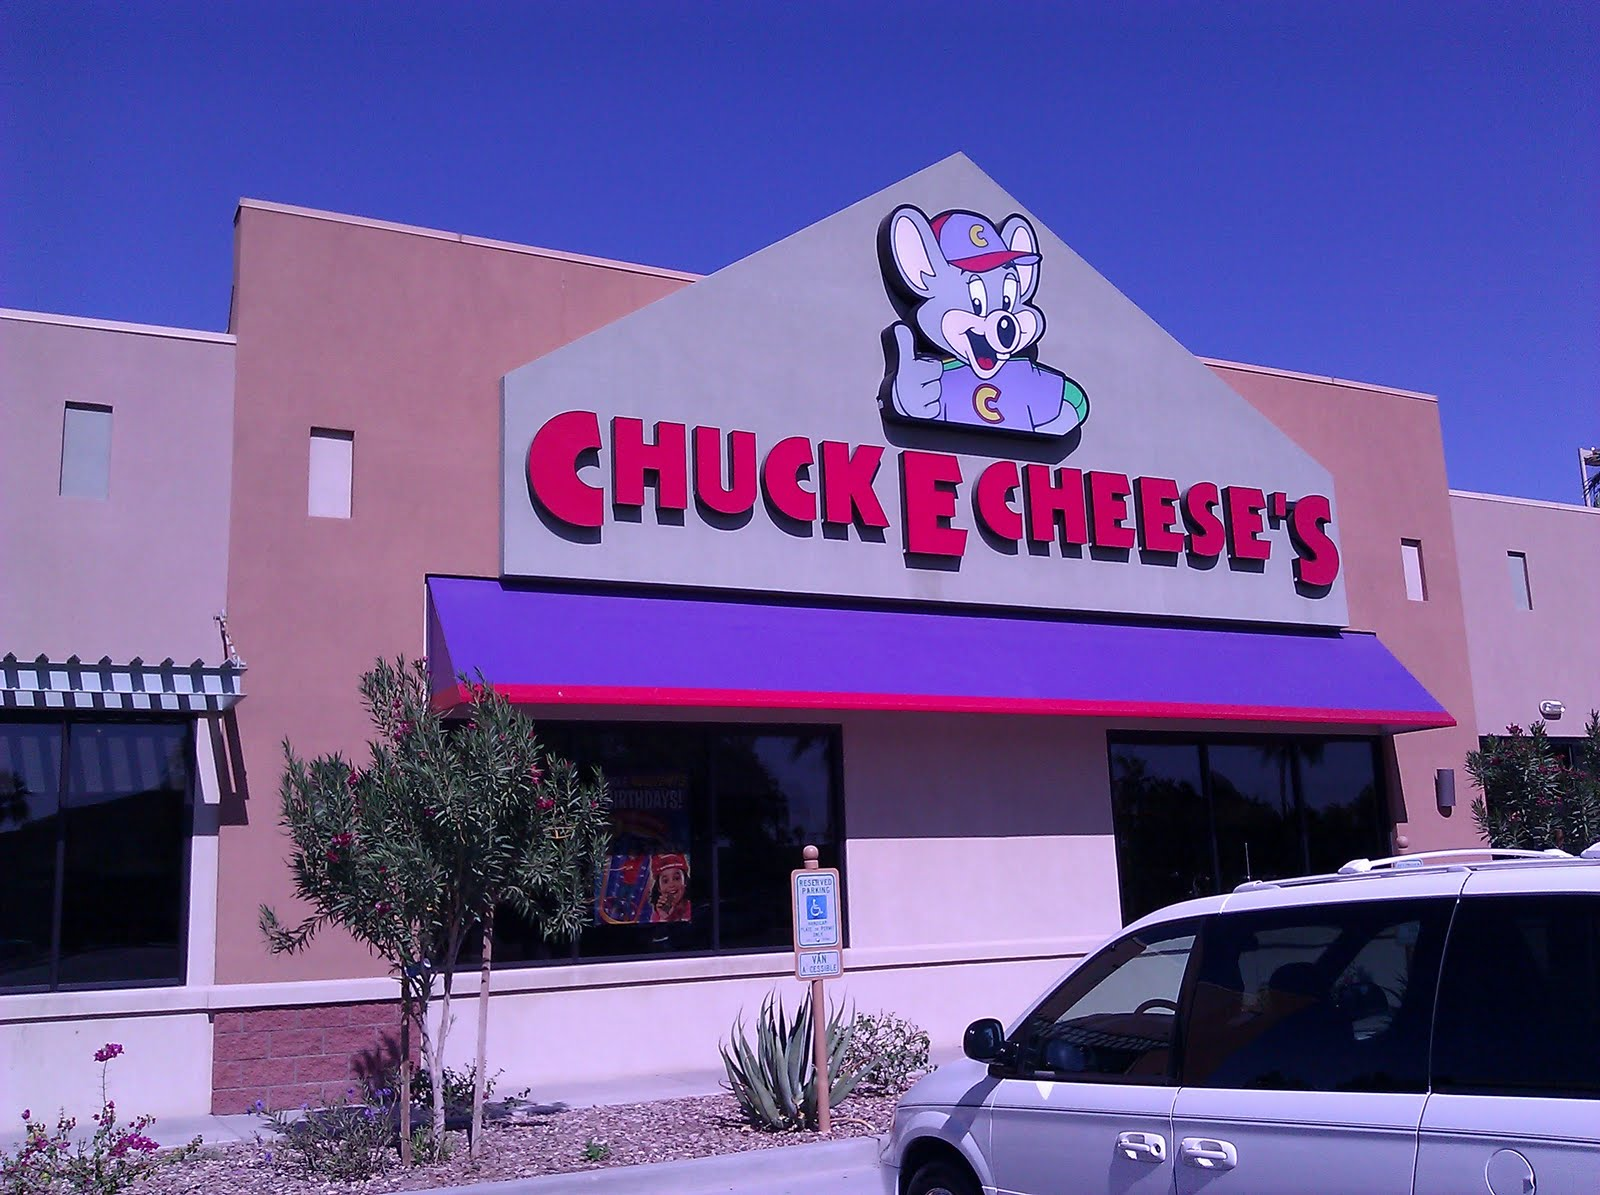 For over 40 years, families have been going to Chuck E. Cheese to play games, eat pizza, and have a great time. Chuck E. Cheese offers old-fashioned arcade games, new-fangled console games.